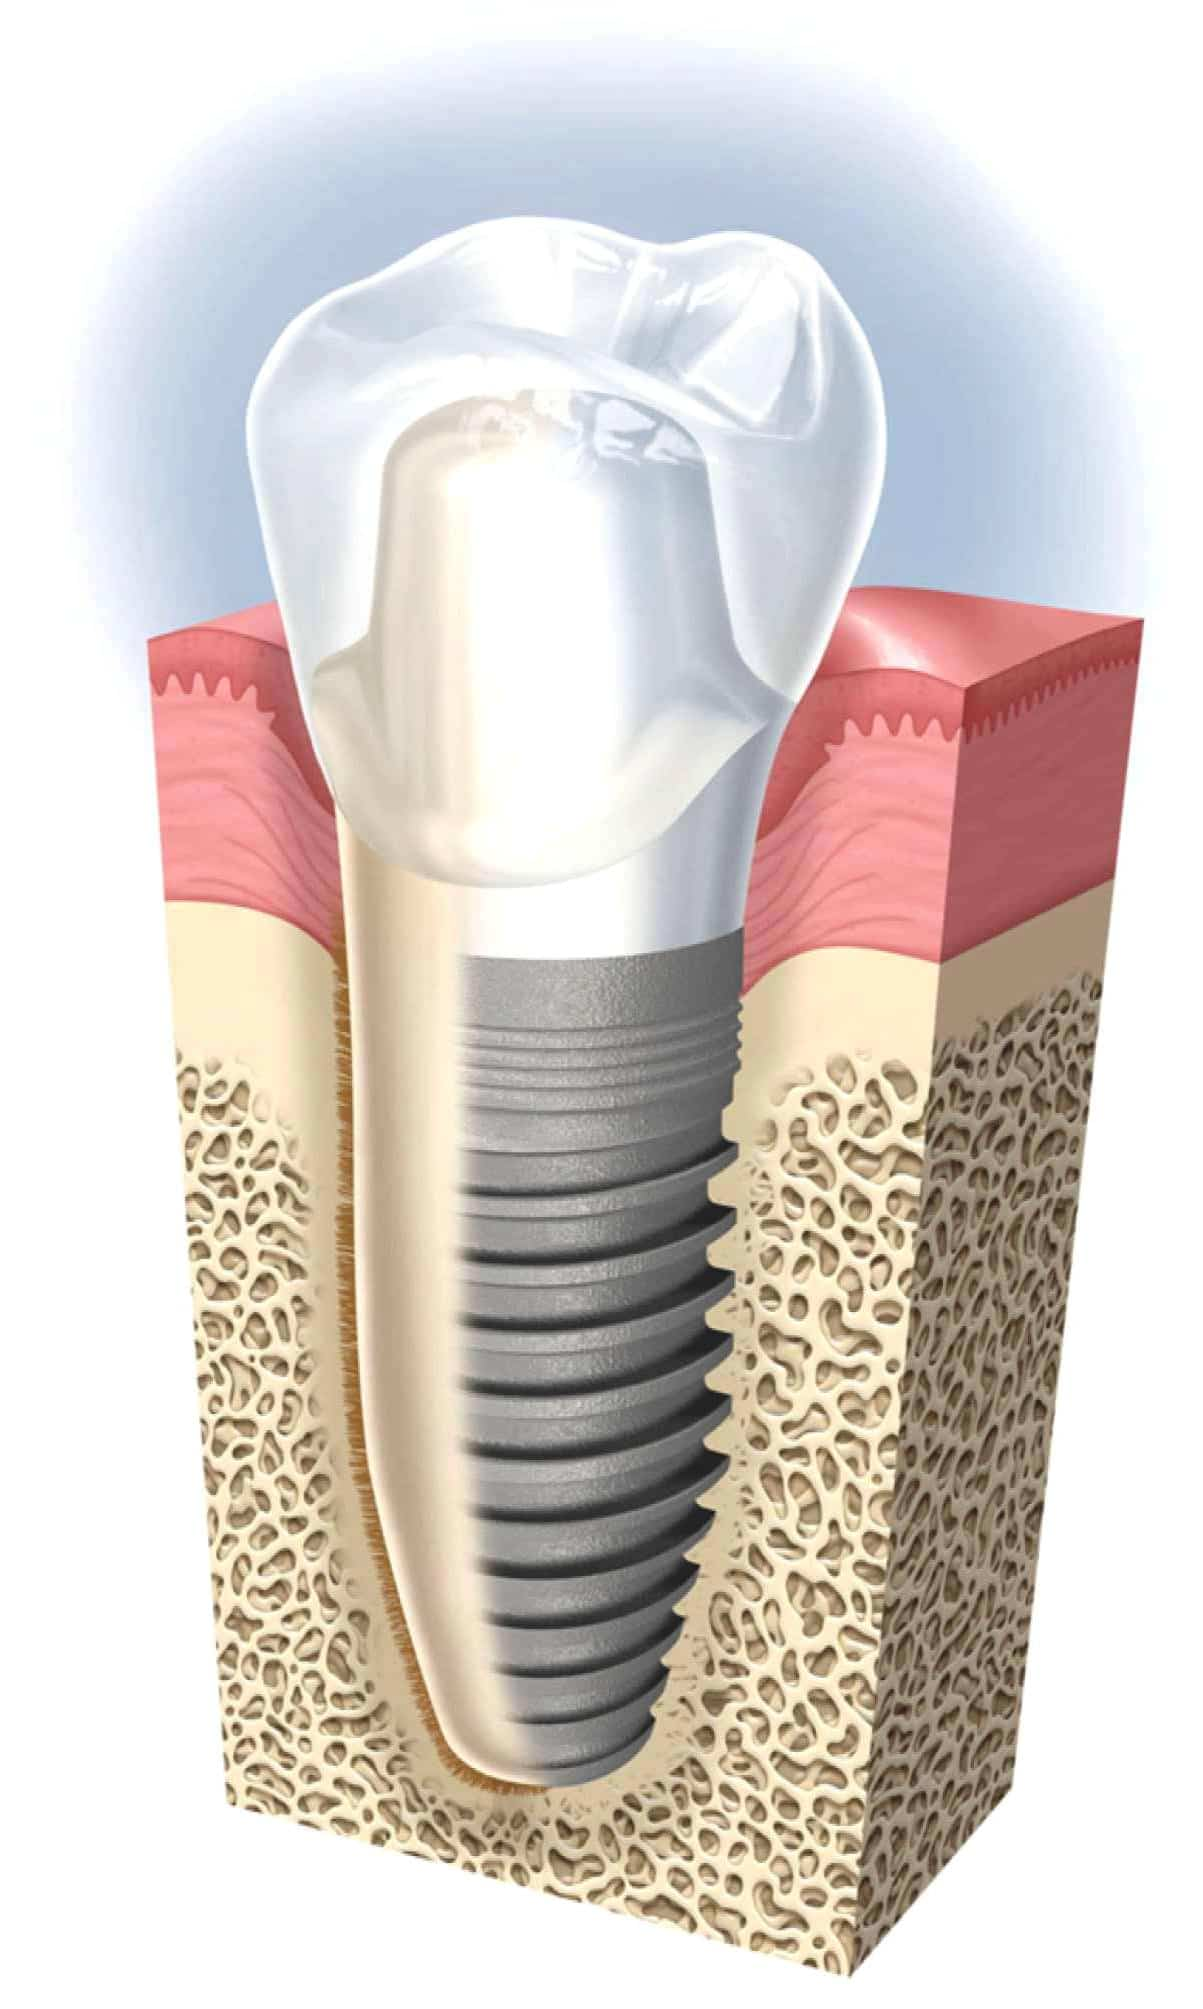 Broward Periodontist Restores Smiles One Dental Implant At A Time